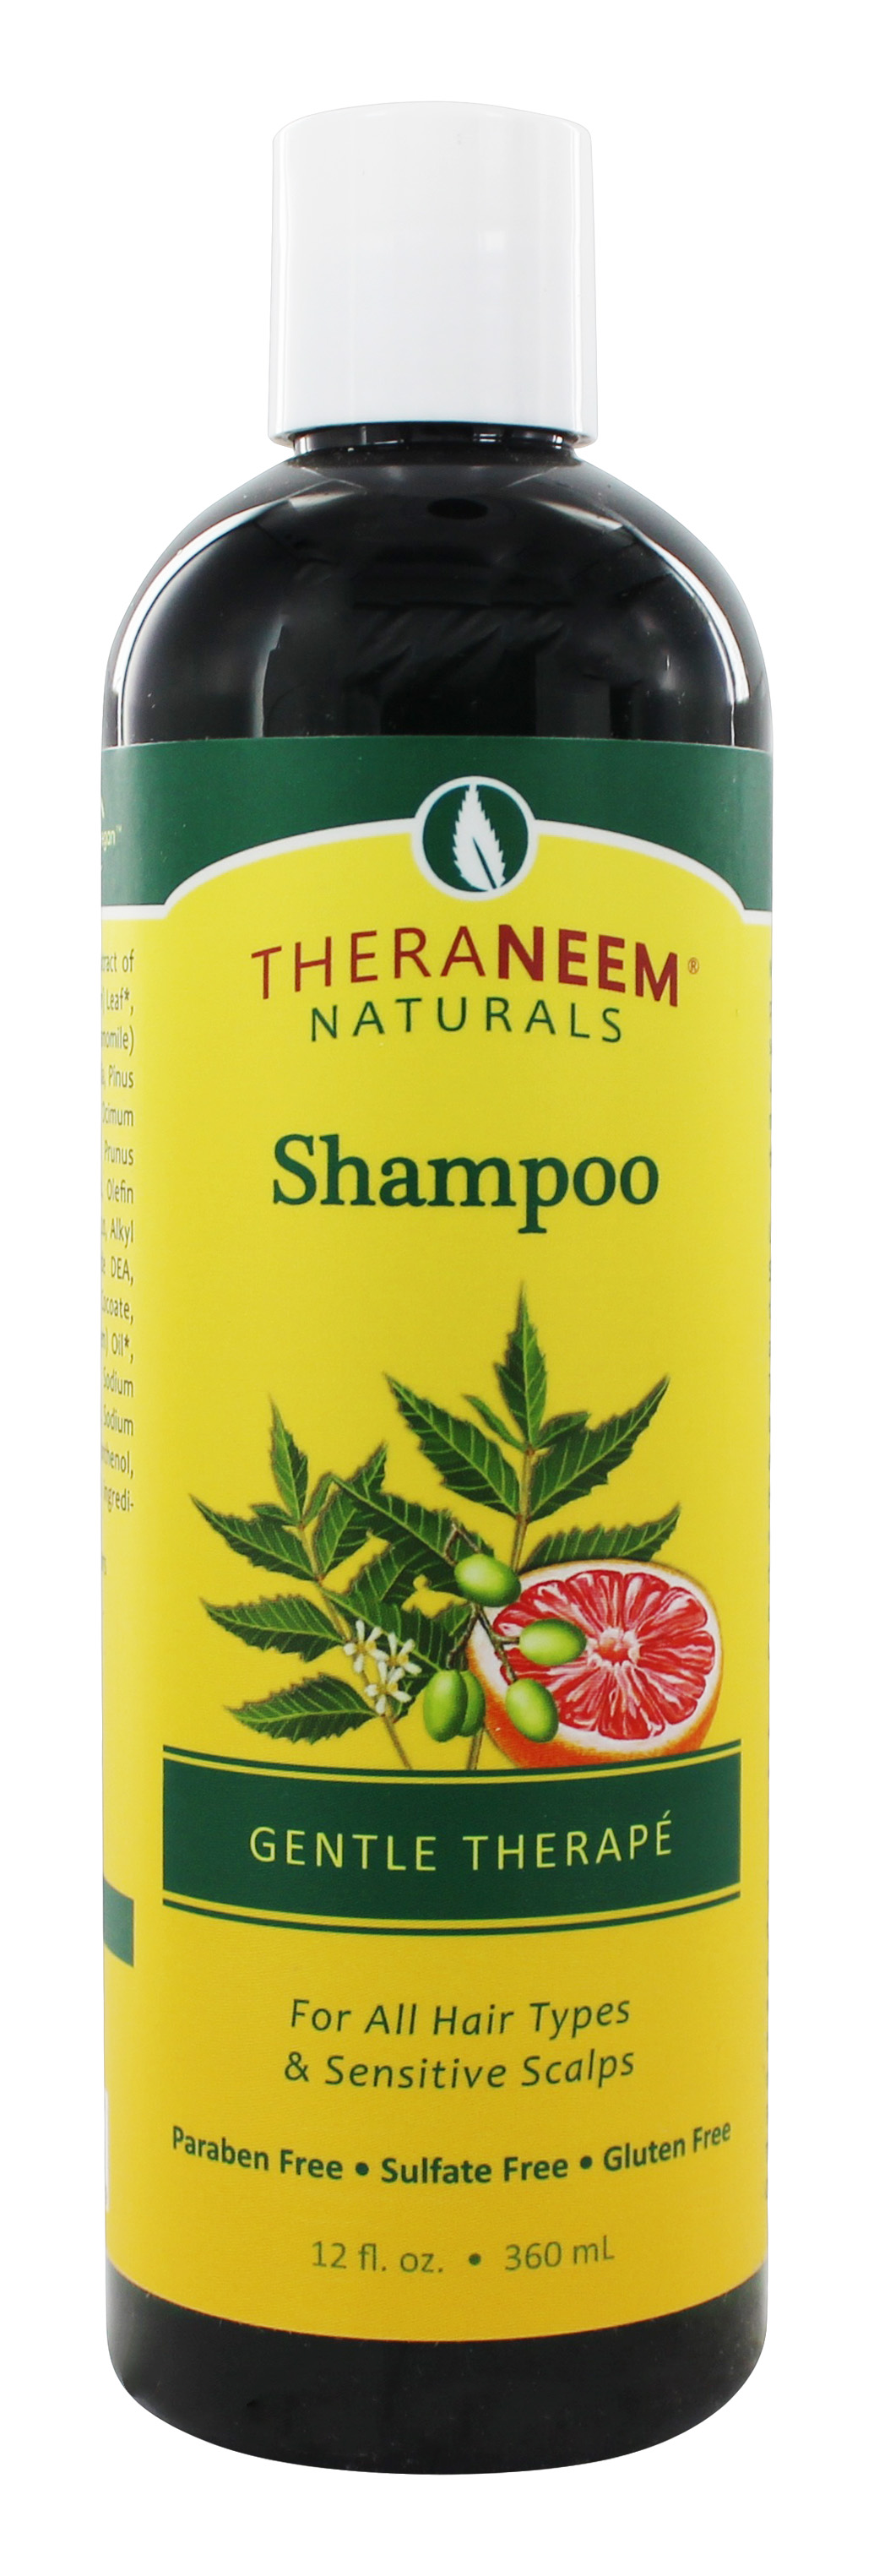 Organix South - TheraNeem Organix Shampoo Gentle Therape - 12 oz. by Organix South